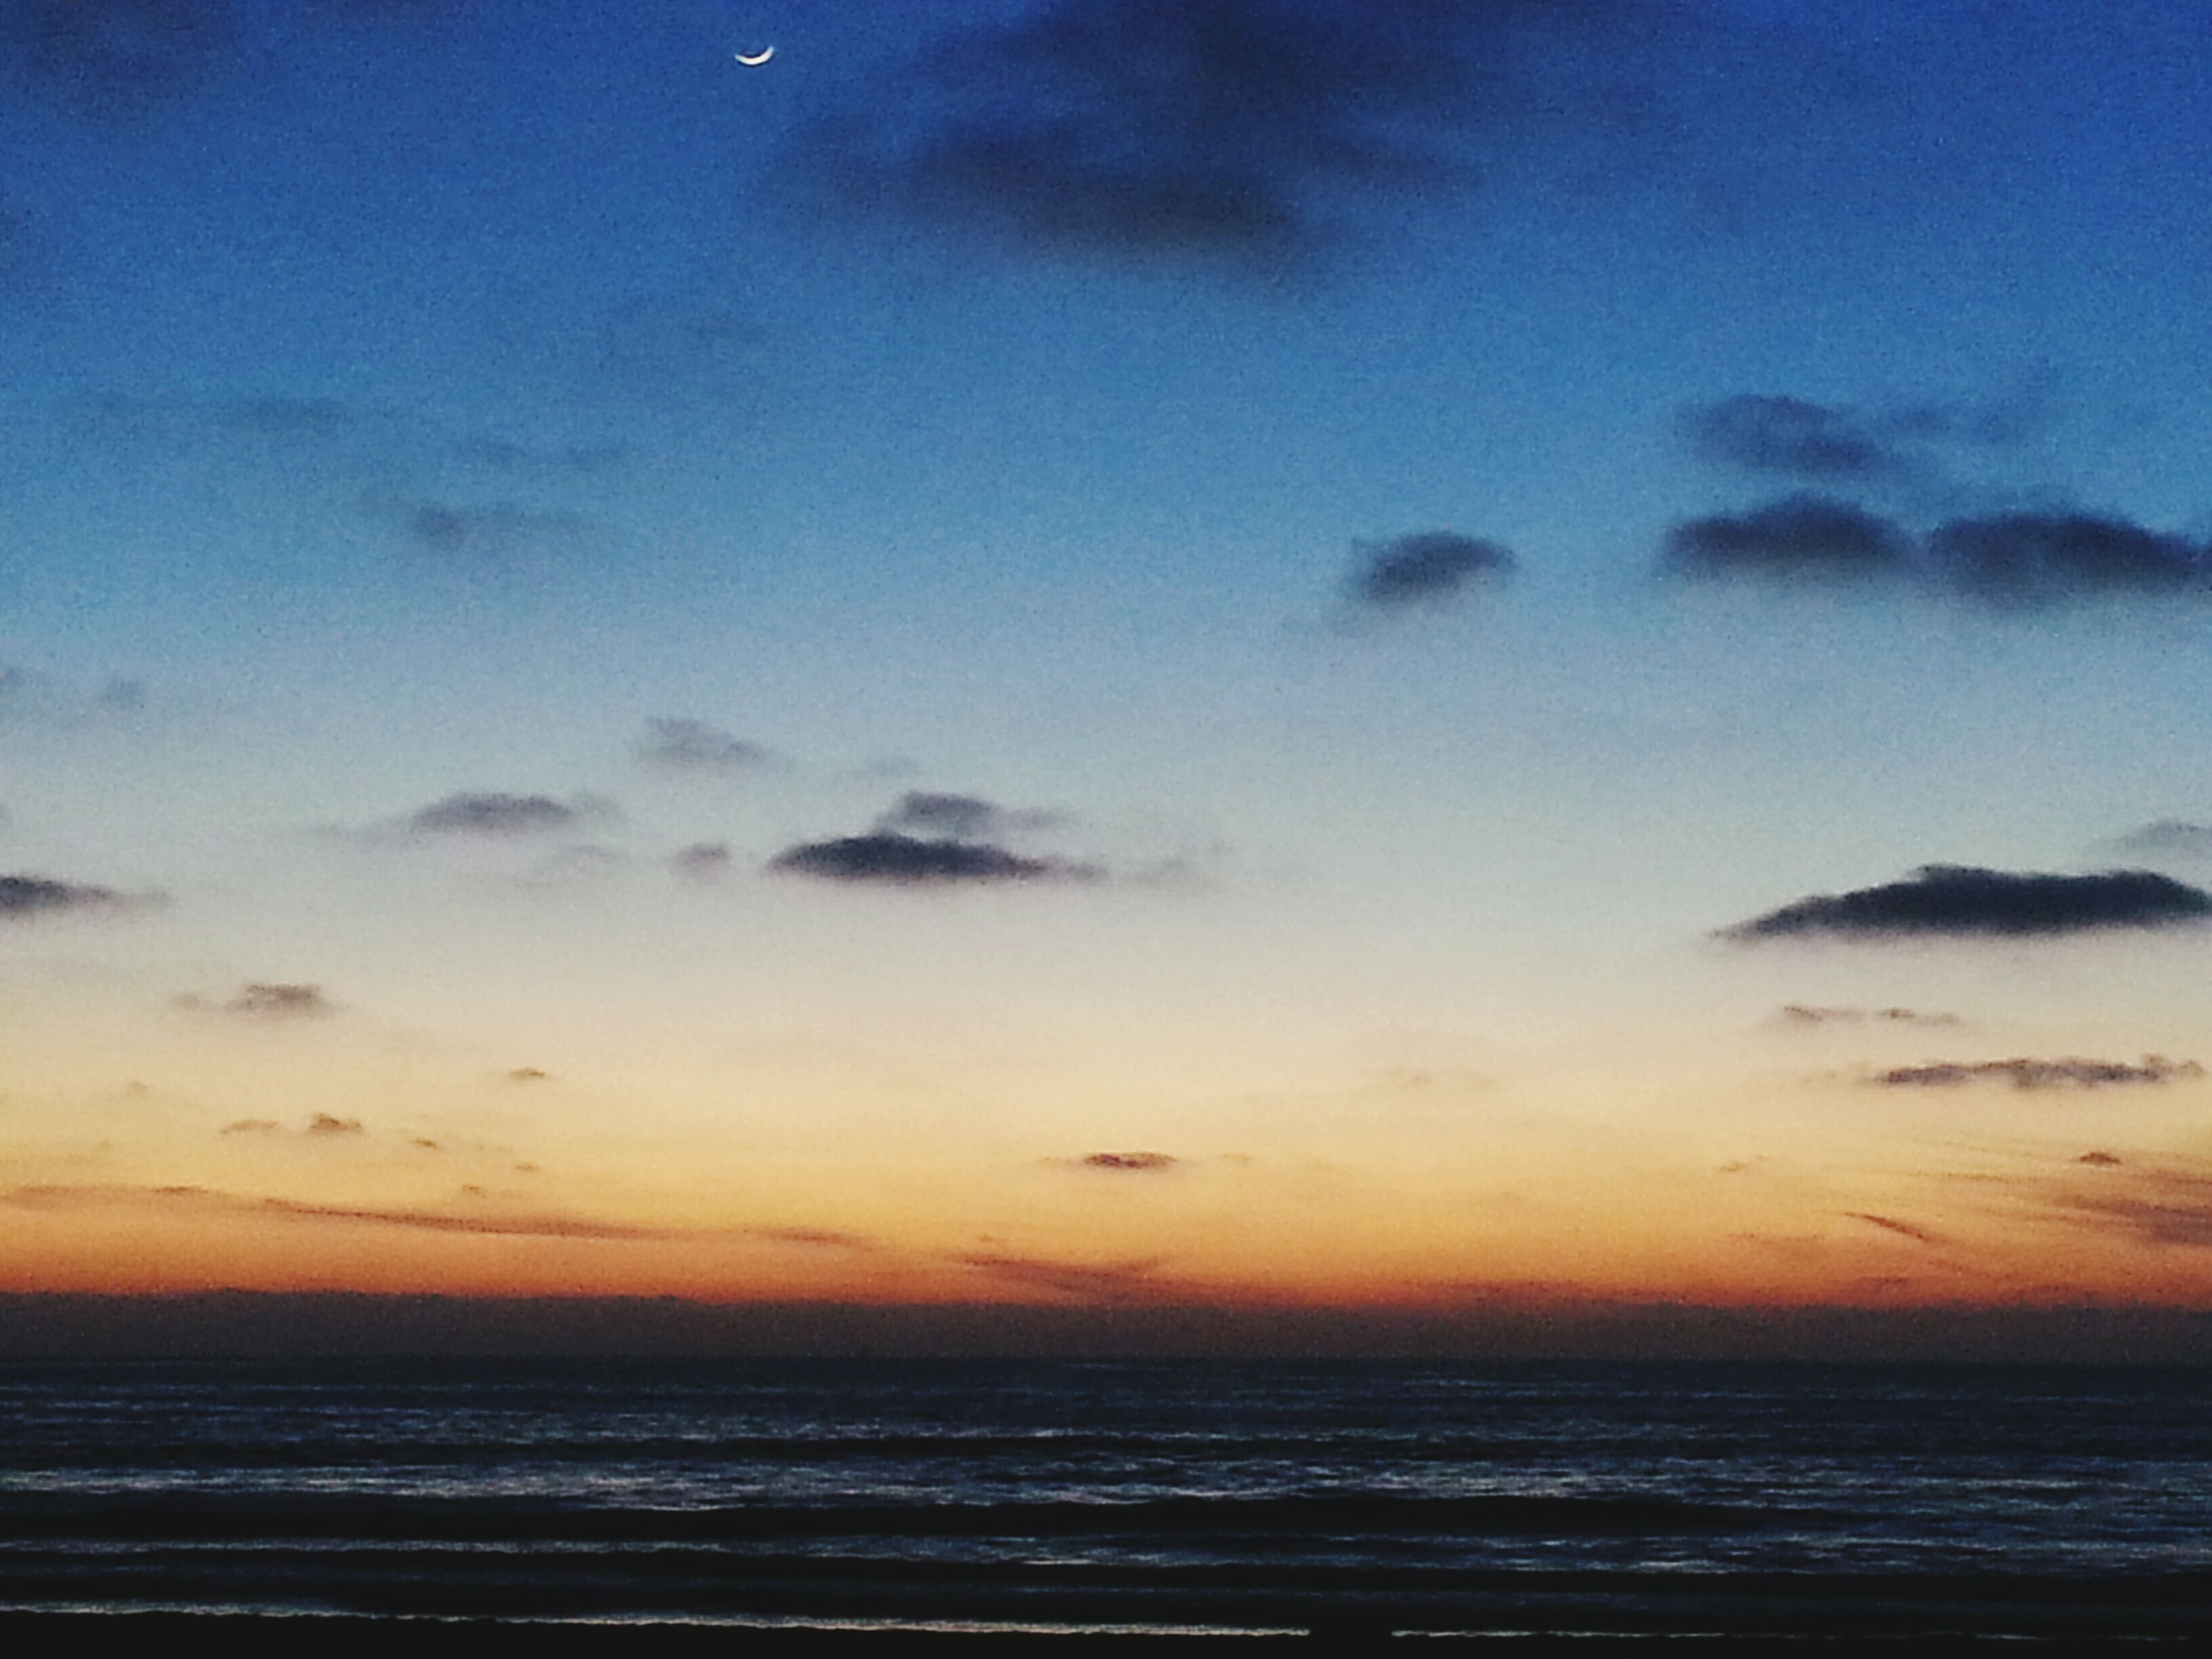 sea, horizon over water, sunset, scenics, water, tranquil scene, beauty in nature, sky, tranquility, idyllic, nature, orange color, beach, cloud - sky, waterfront, blue, cloud, dusk, seascape, outdoors